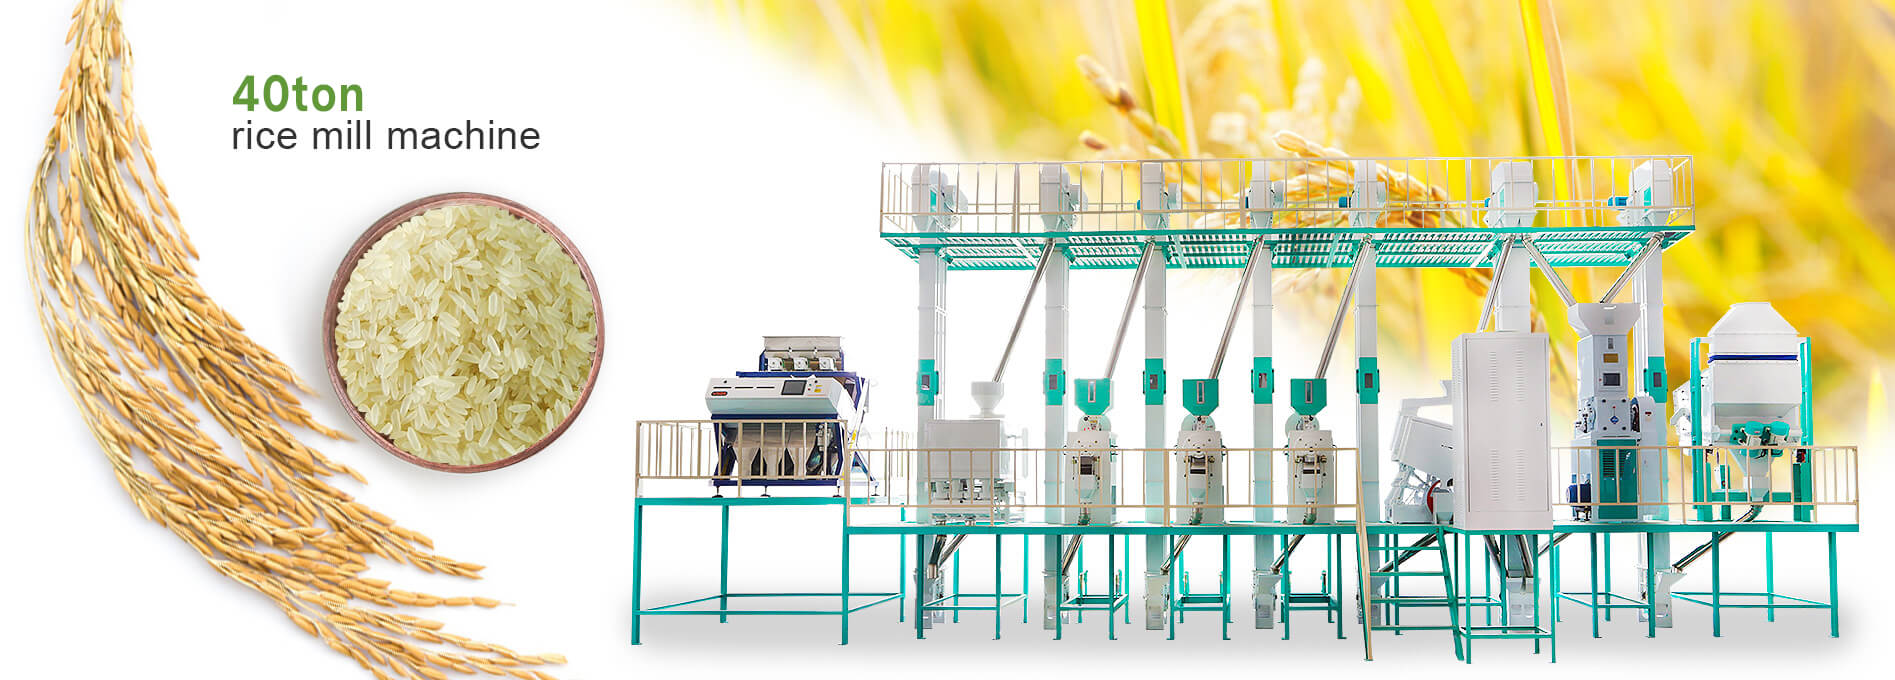 38ton rice mill production line